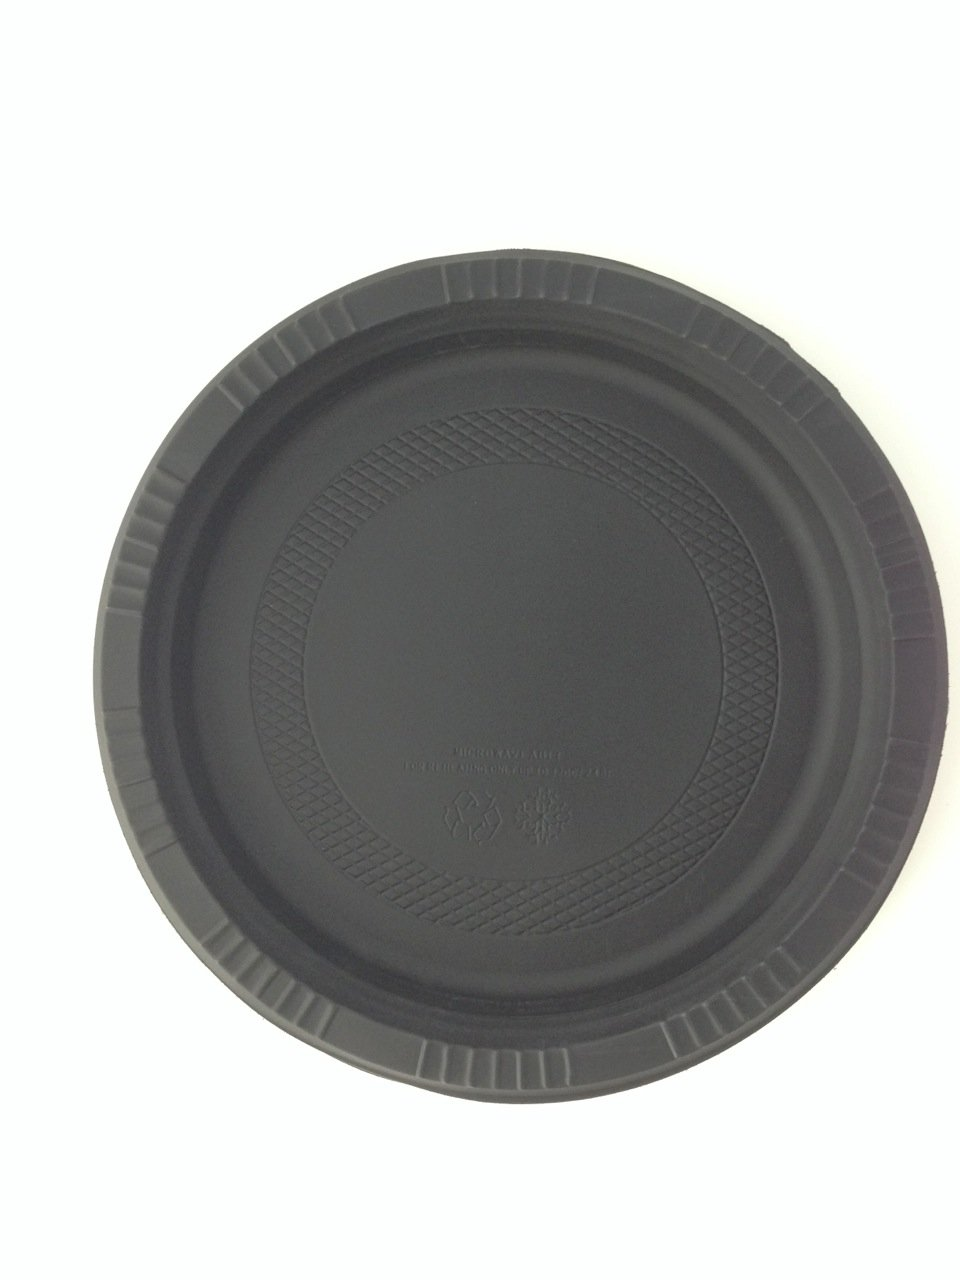 Yumi Return Compostable Natural Starch Black 10-1/4-Inch Plate, 500-pieces